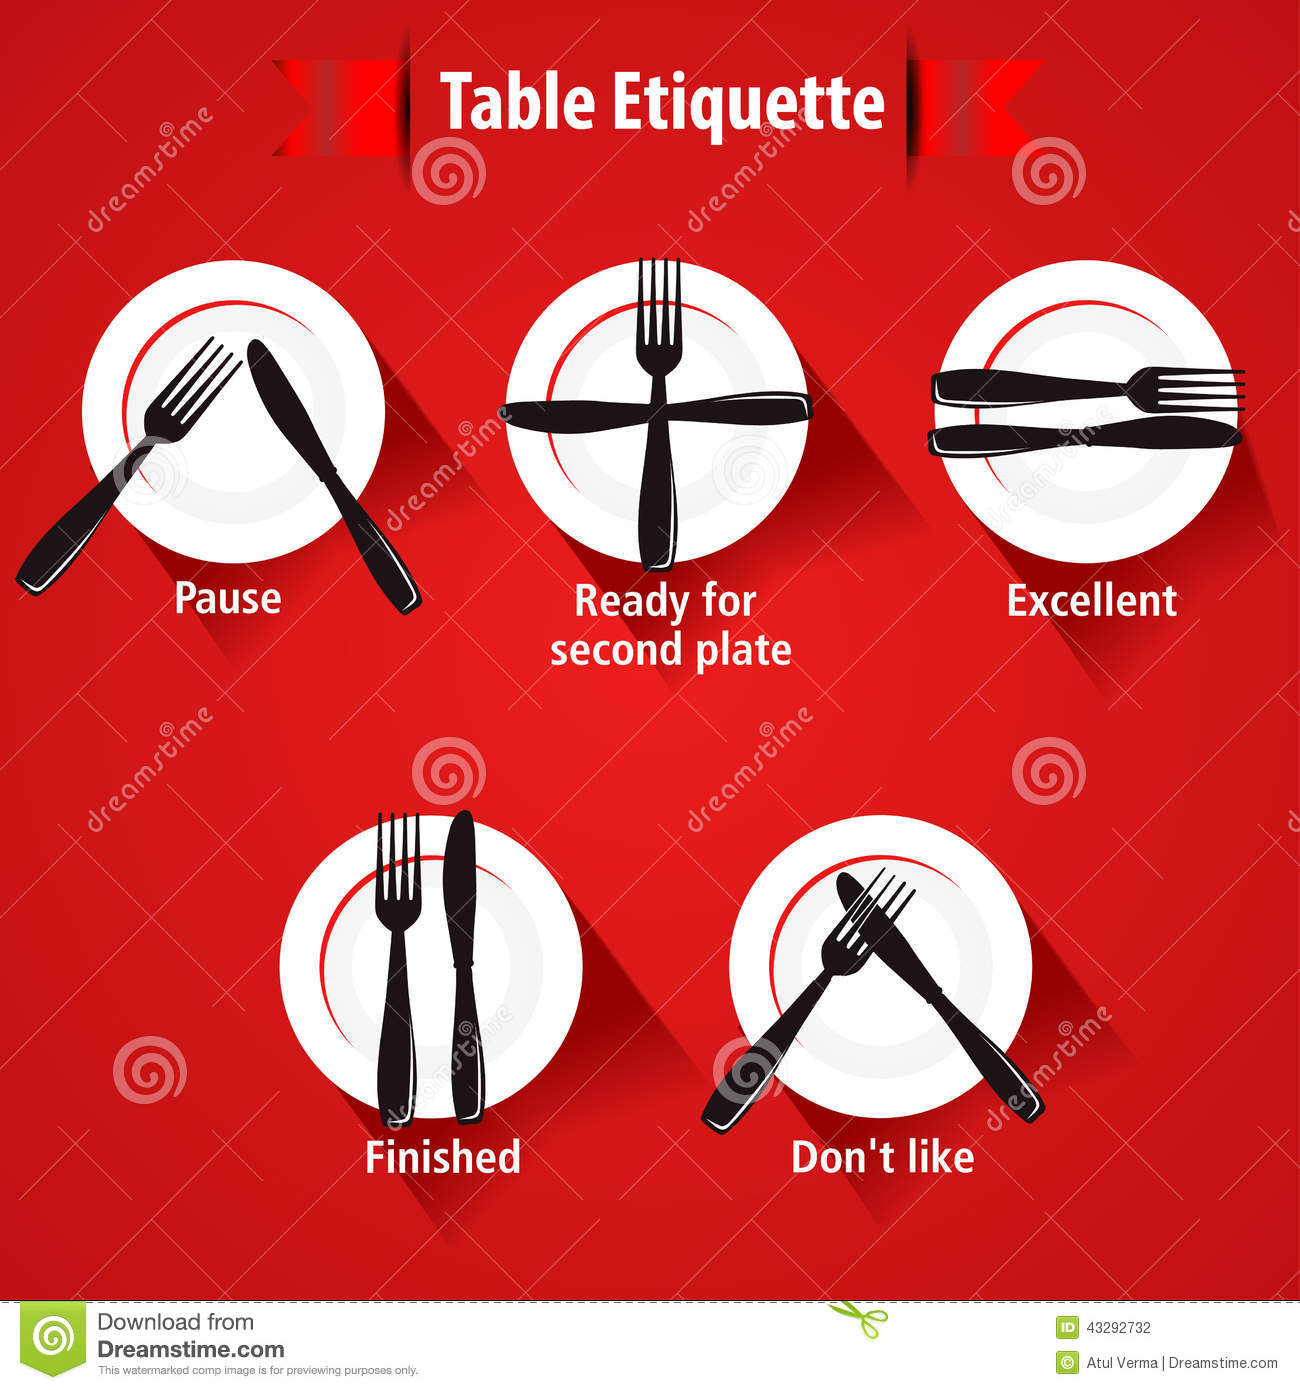 Dining Etiquette And Table Manner Forks And Knifes  : dining etiquette table manner forks knifes signals created 43292732 from www.dreamstime.com size 1300 x 1390 jpeg 178kB